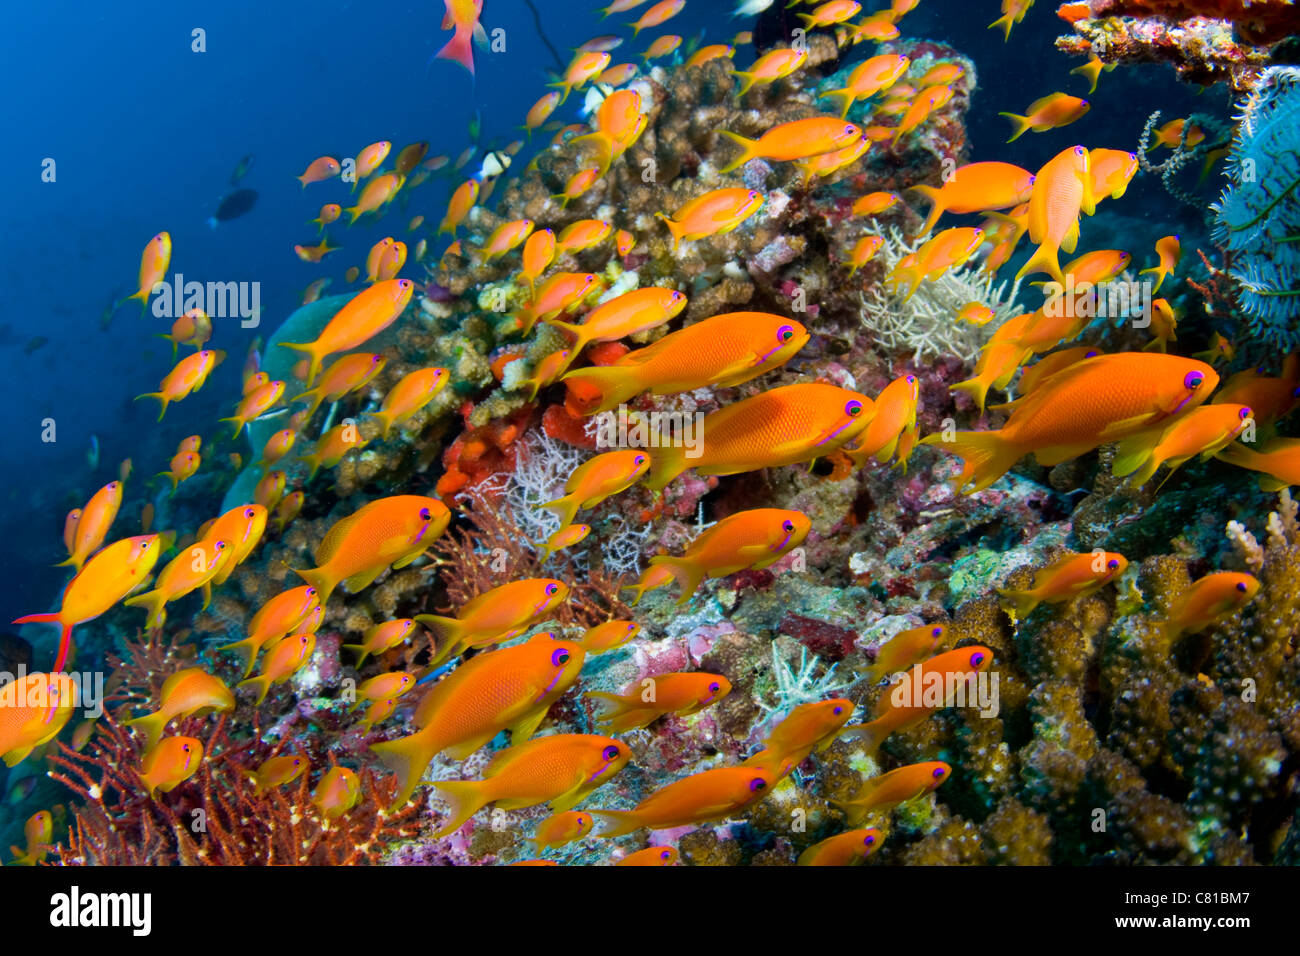 Underwater sea life images galleries for The fishing school